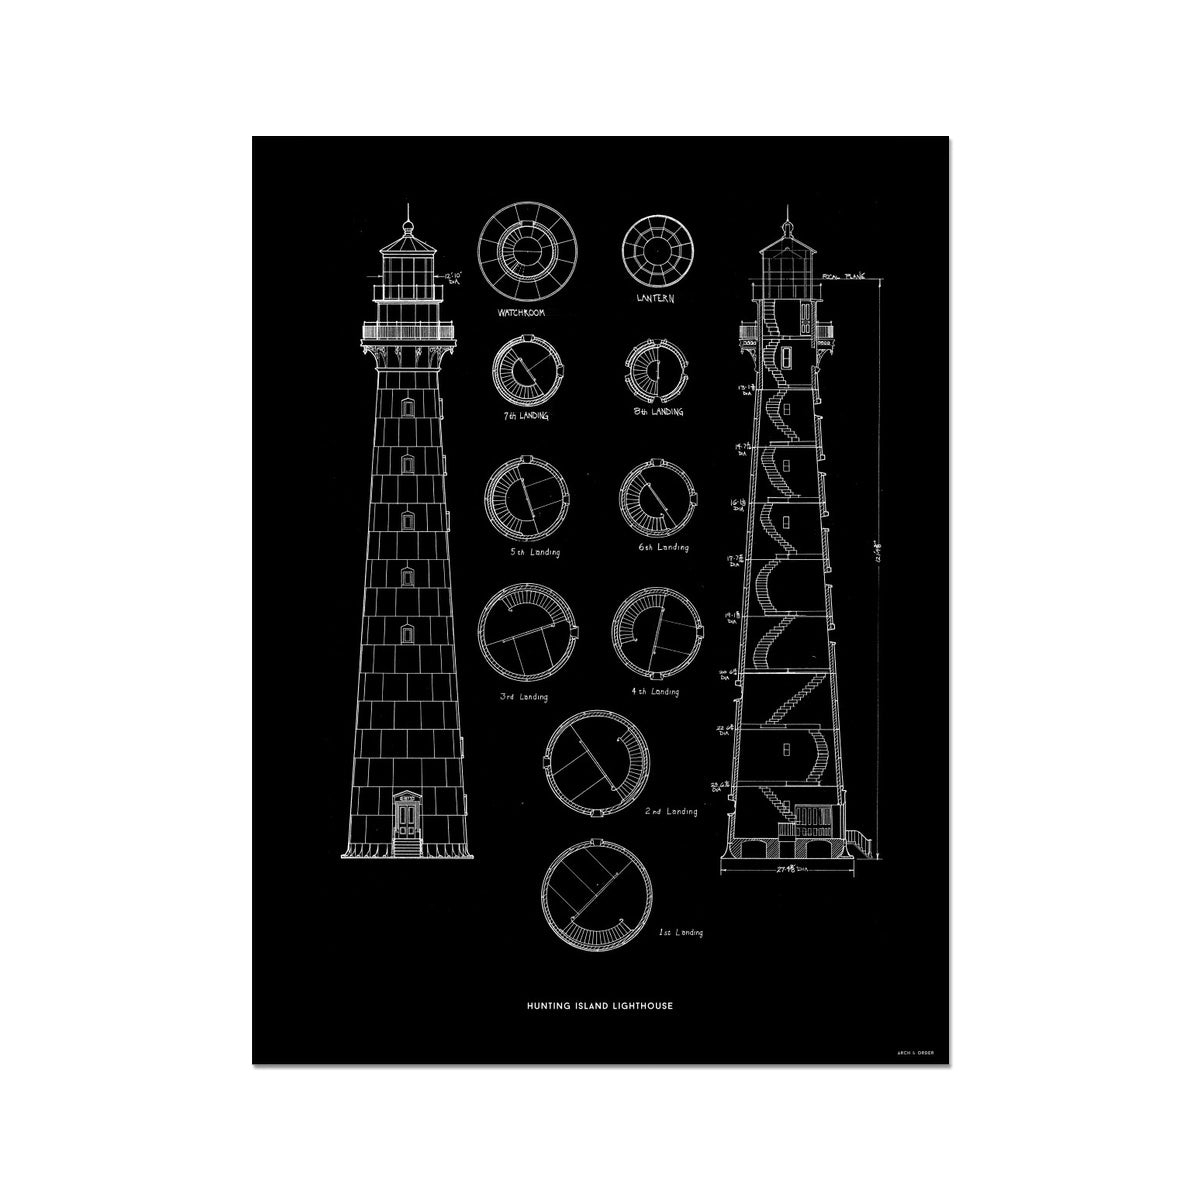 Hunting Island Second Order Lighthouse - Black -  Etching Paper Print